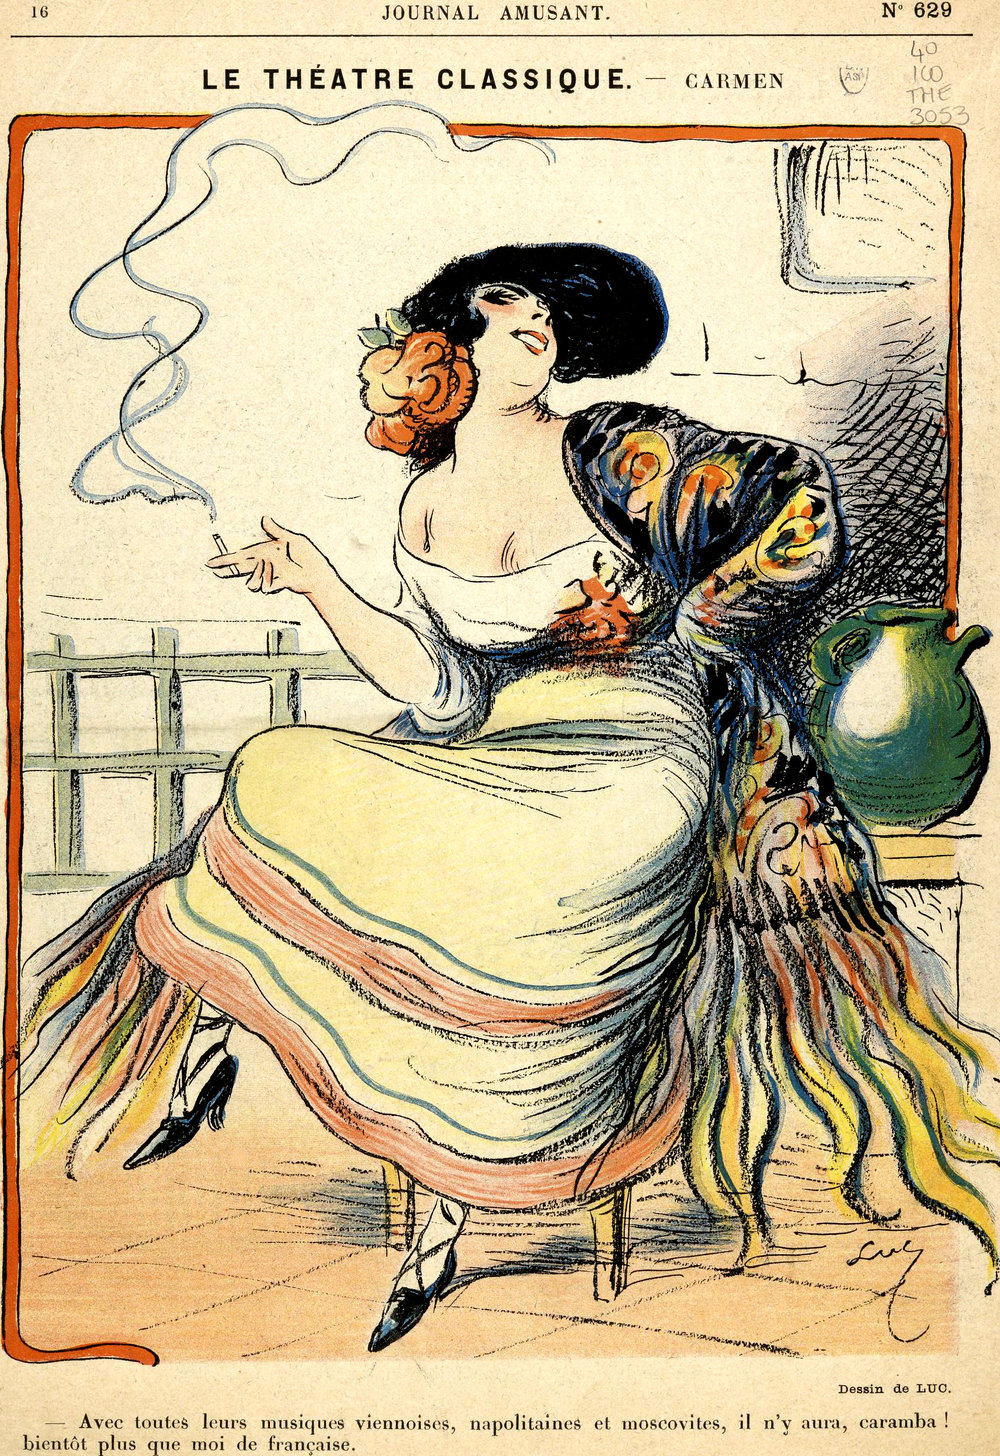 Carmen_-_illustration_by_Luc_for_Journal_Amusant_1875.jpg